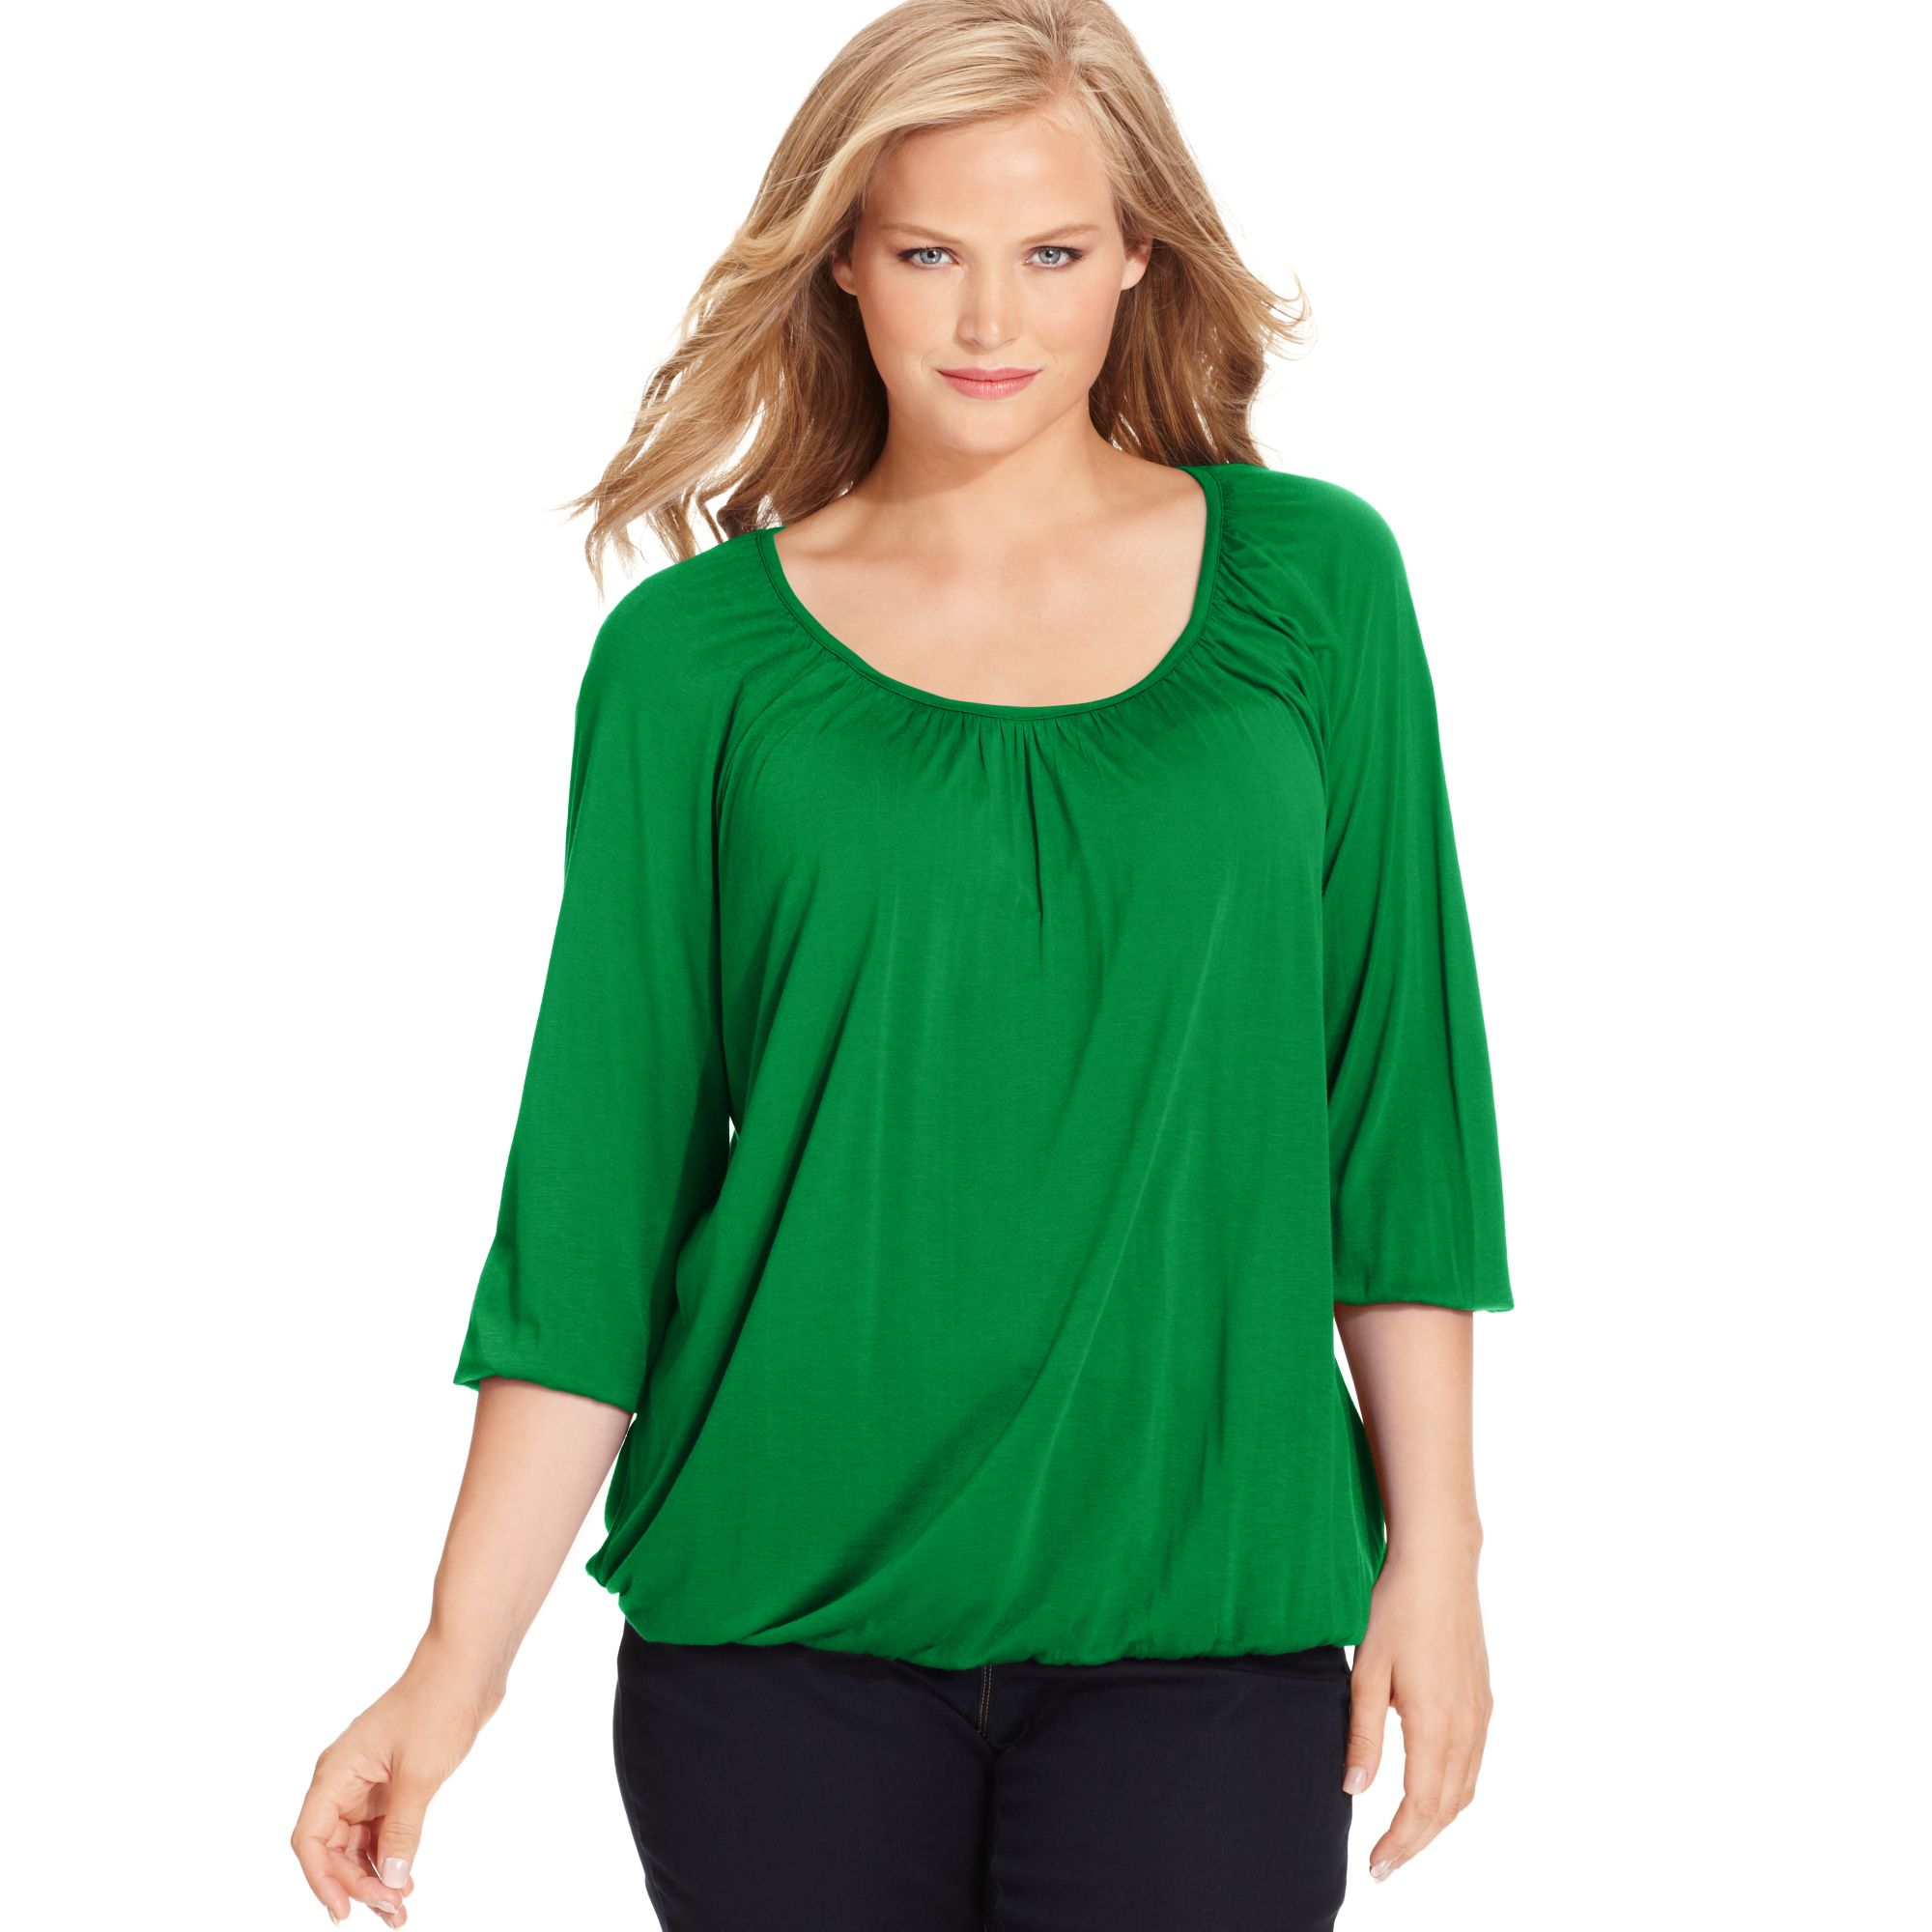 eca9c7c753a Lyst - Michael Kors Plus Size Three Quarter Sleeve Peasant Top in Green